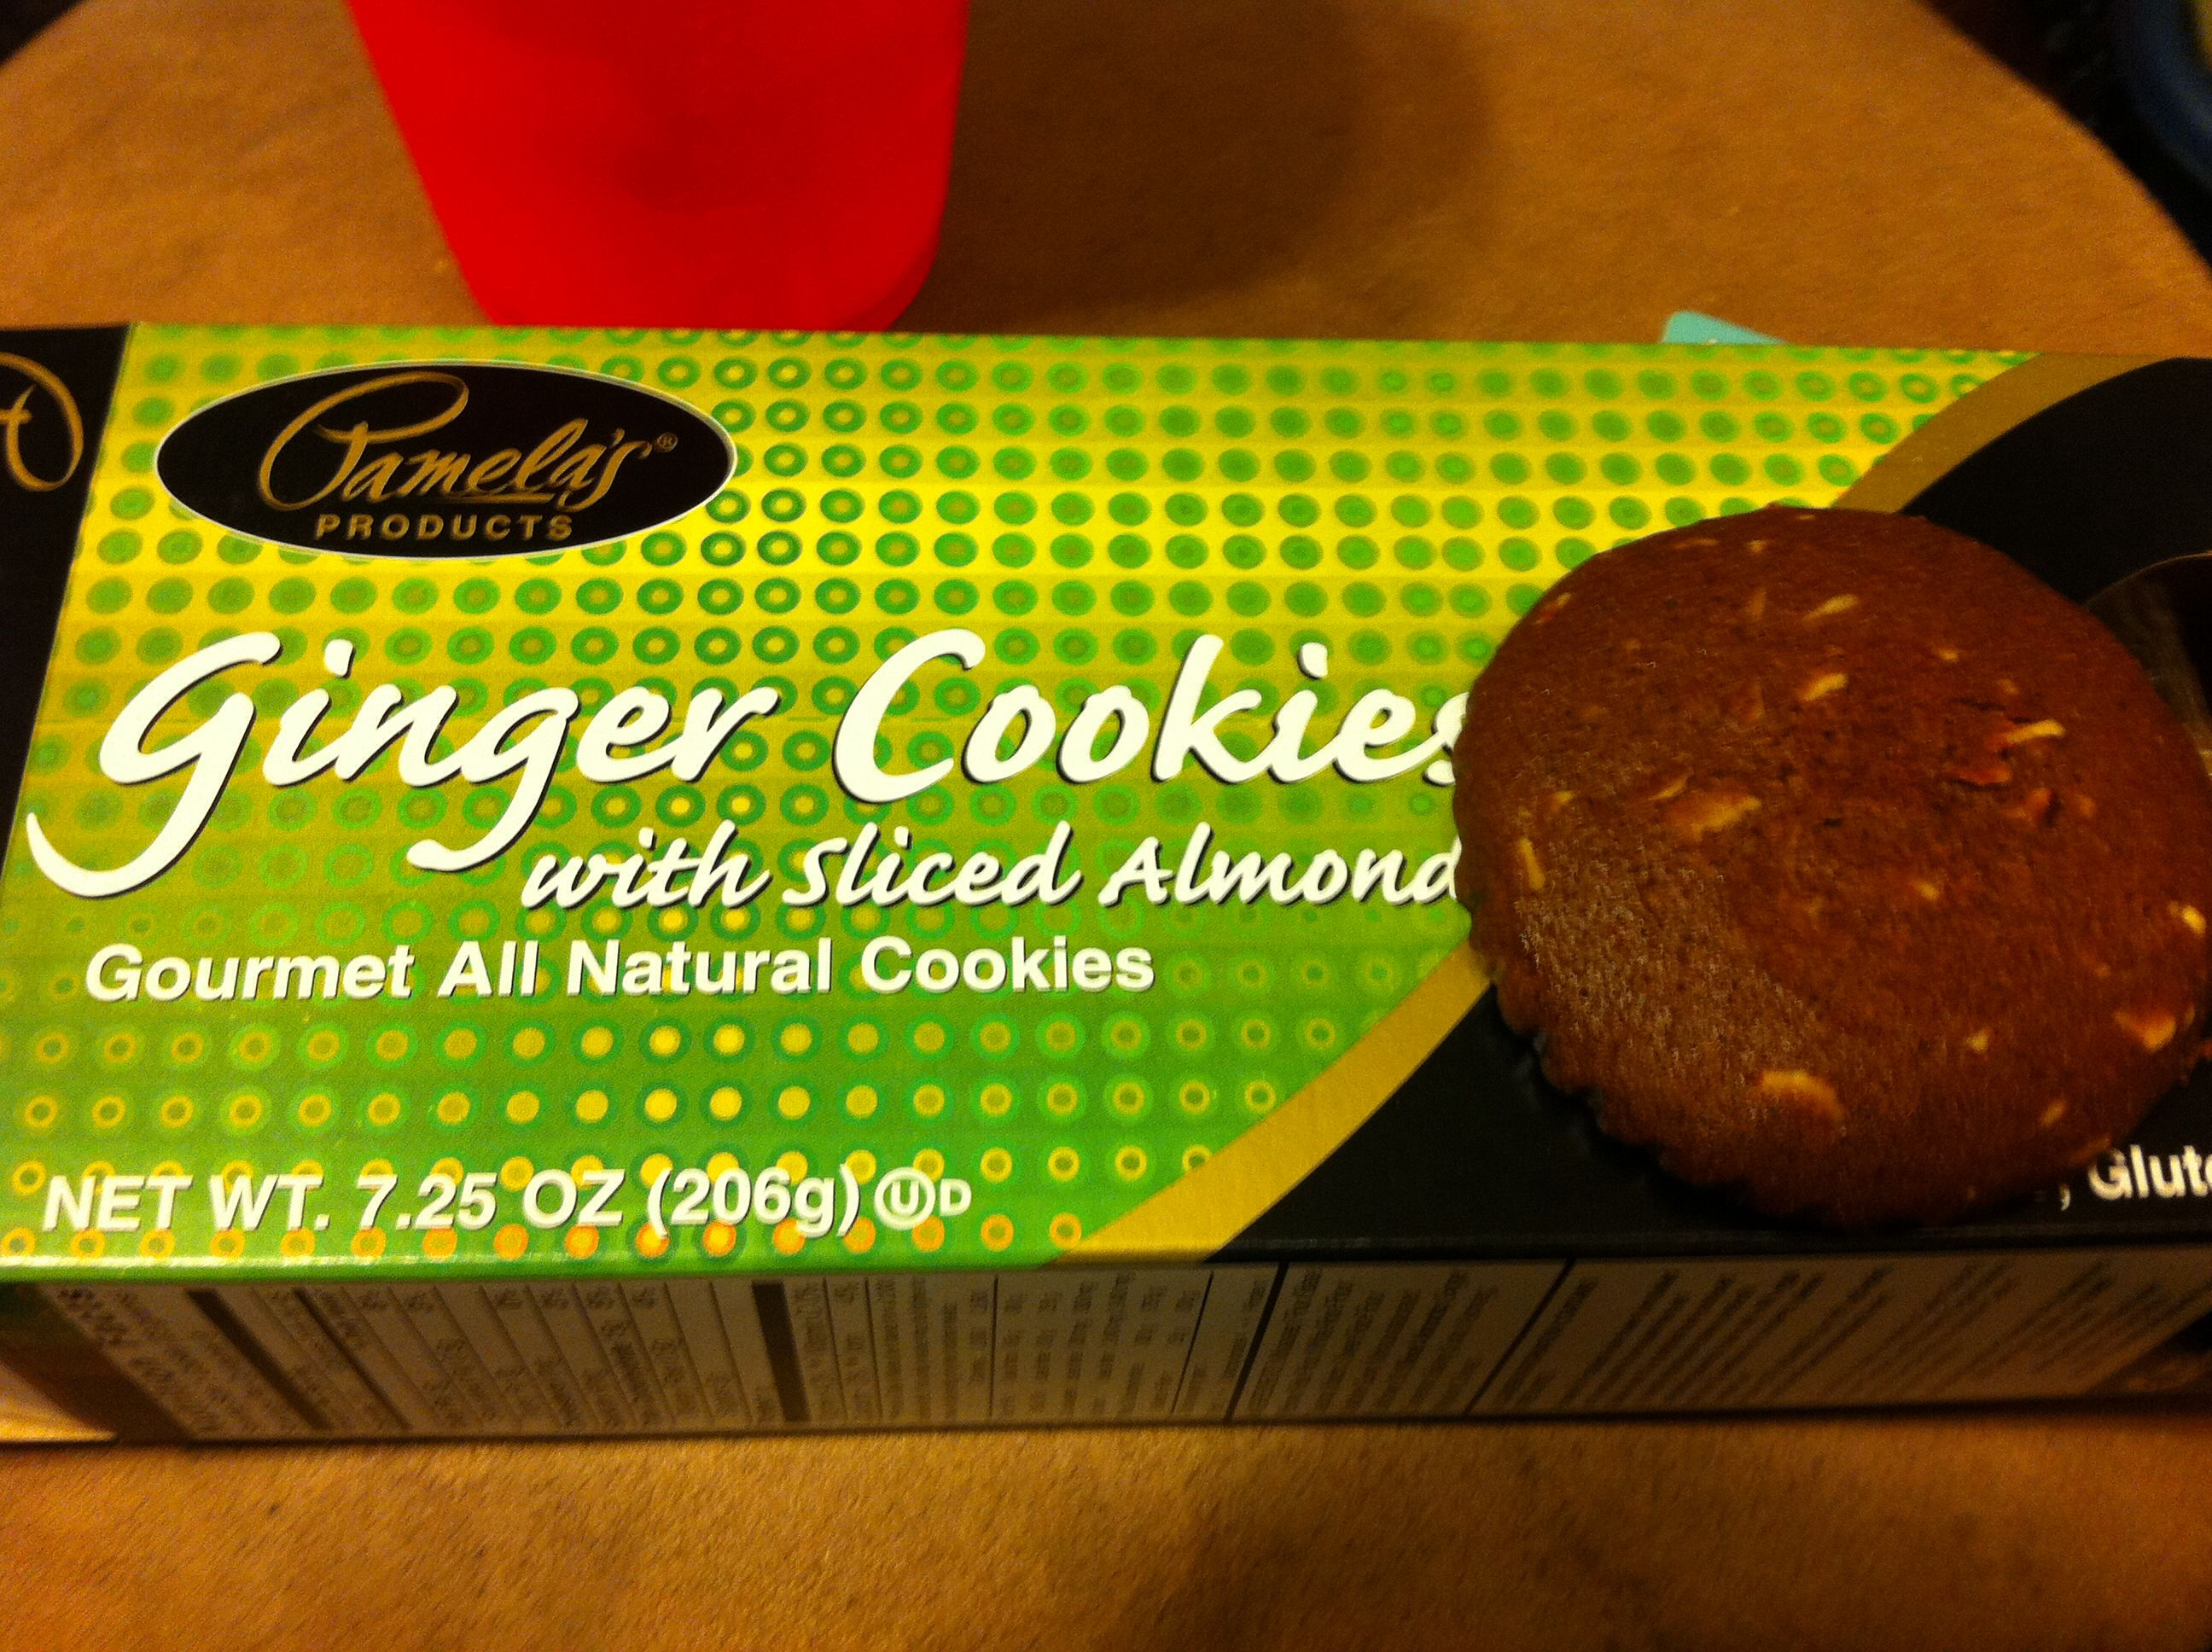 Awesome! The gingerbread taste I love without gluten.